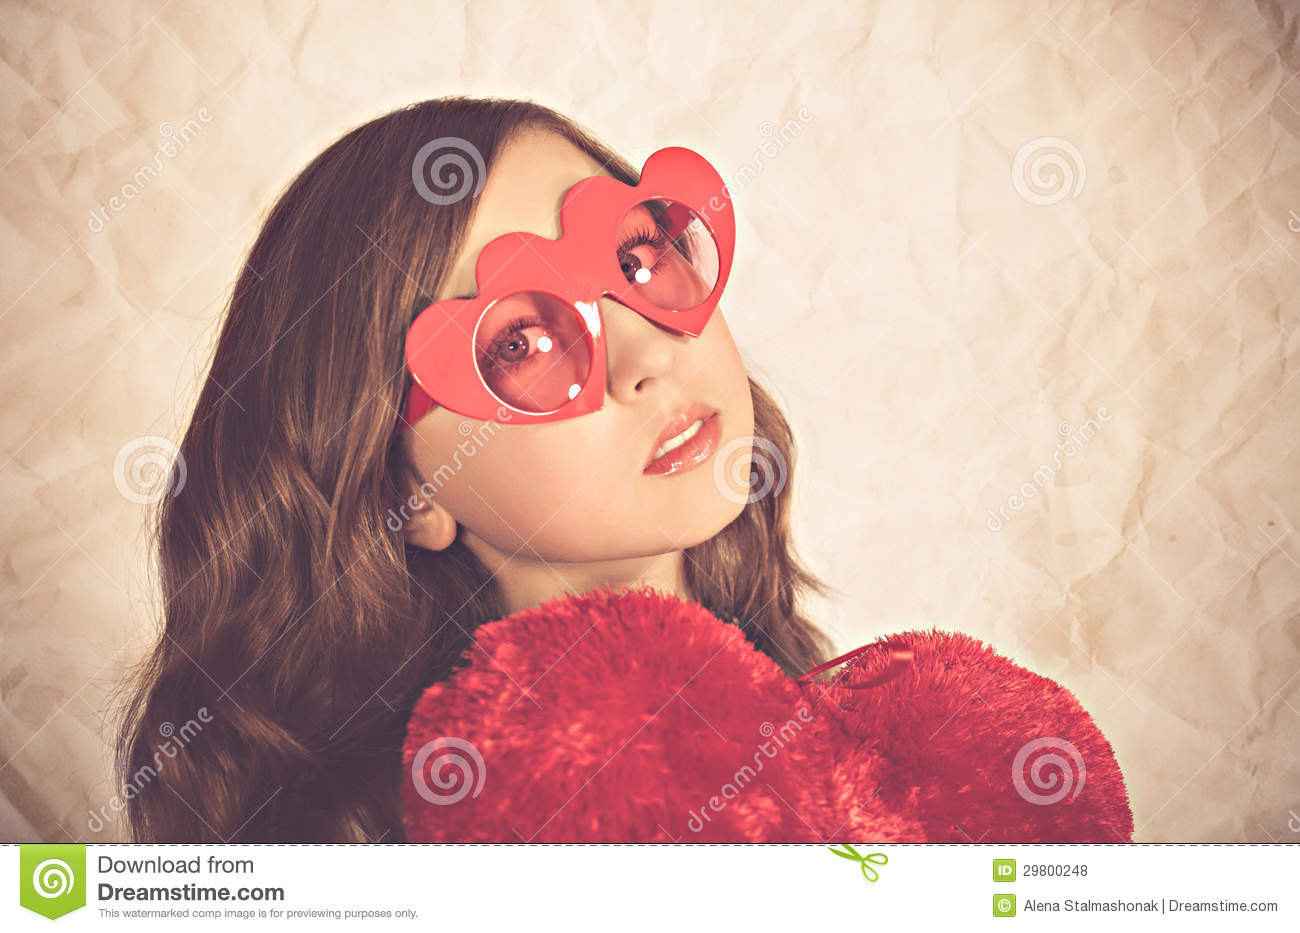 Images Girl With Heart Shaped Sunglasses Royalty Free Stock